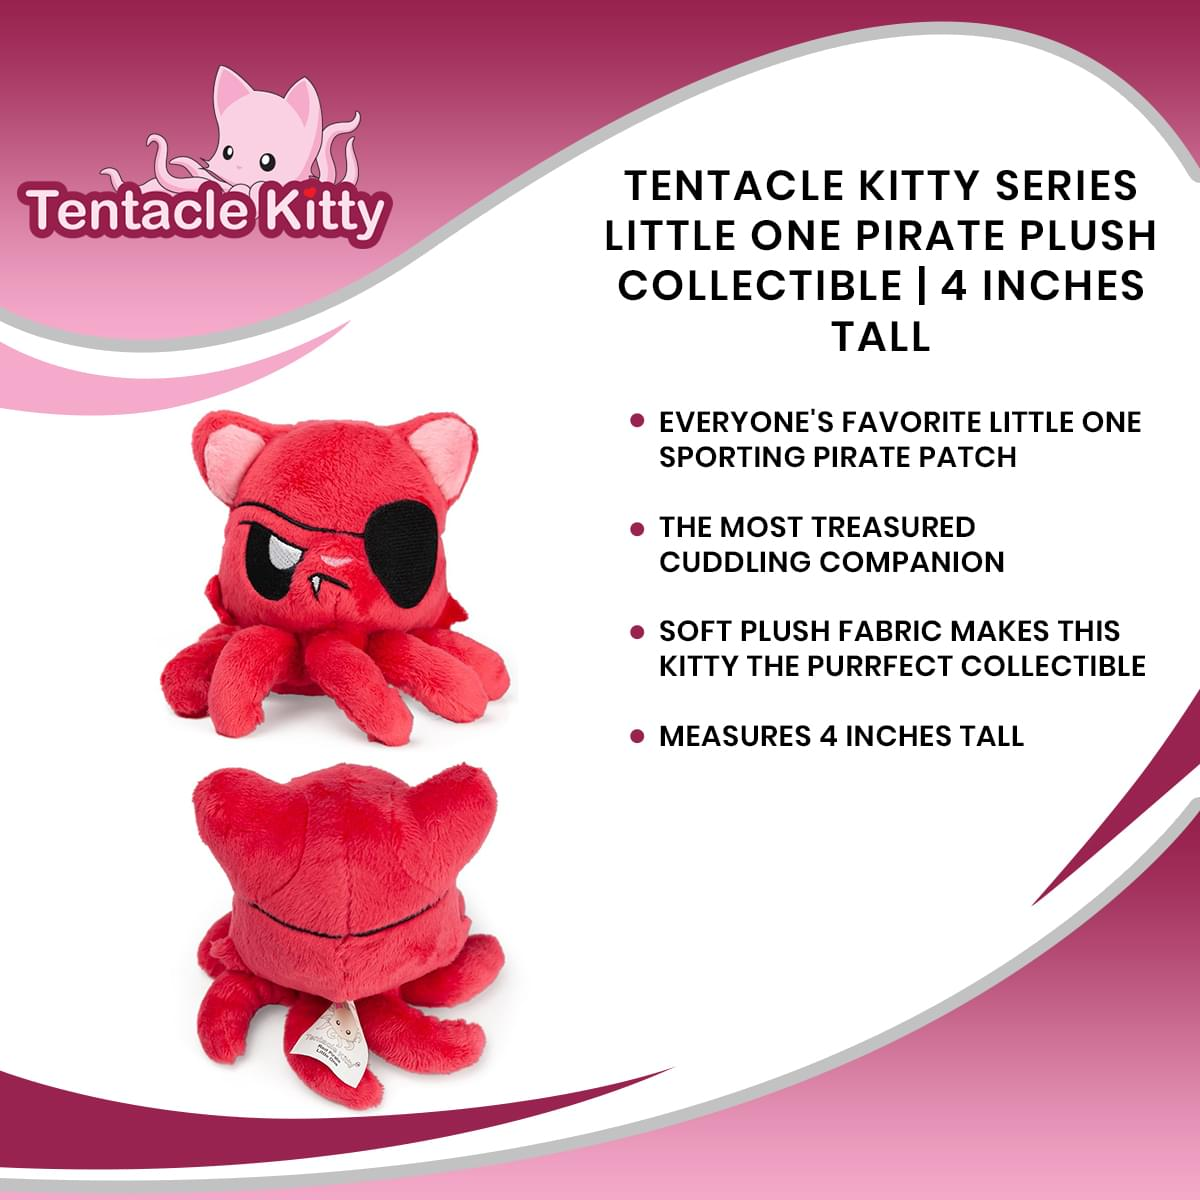 Tentacle Kitty Series Little One Pirate Plush Collectible | 4 Inches Tall